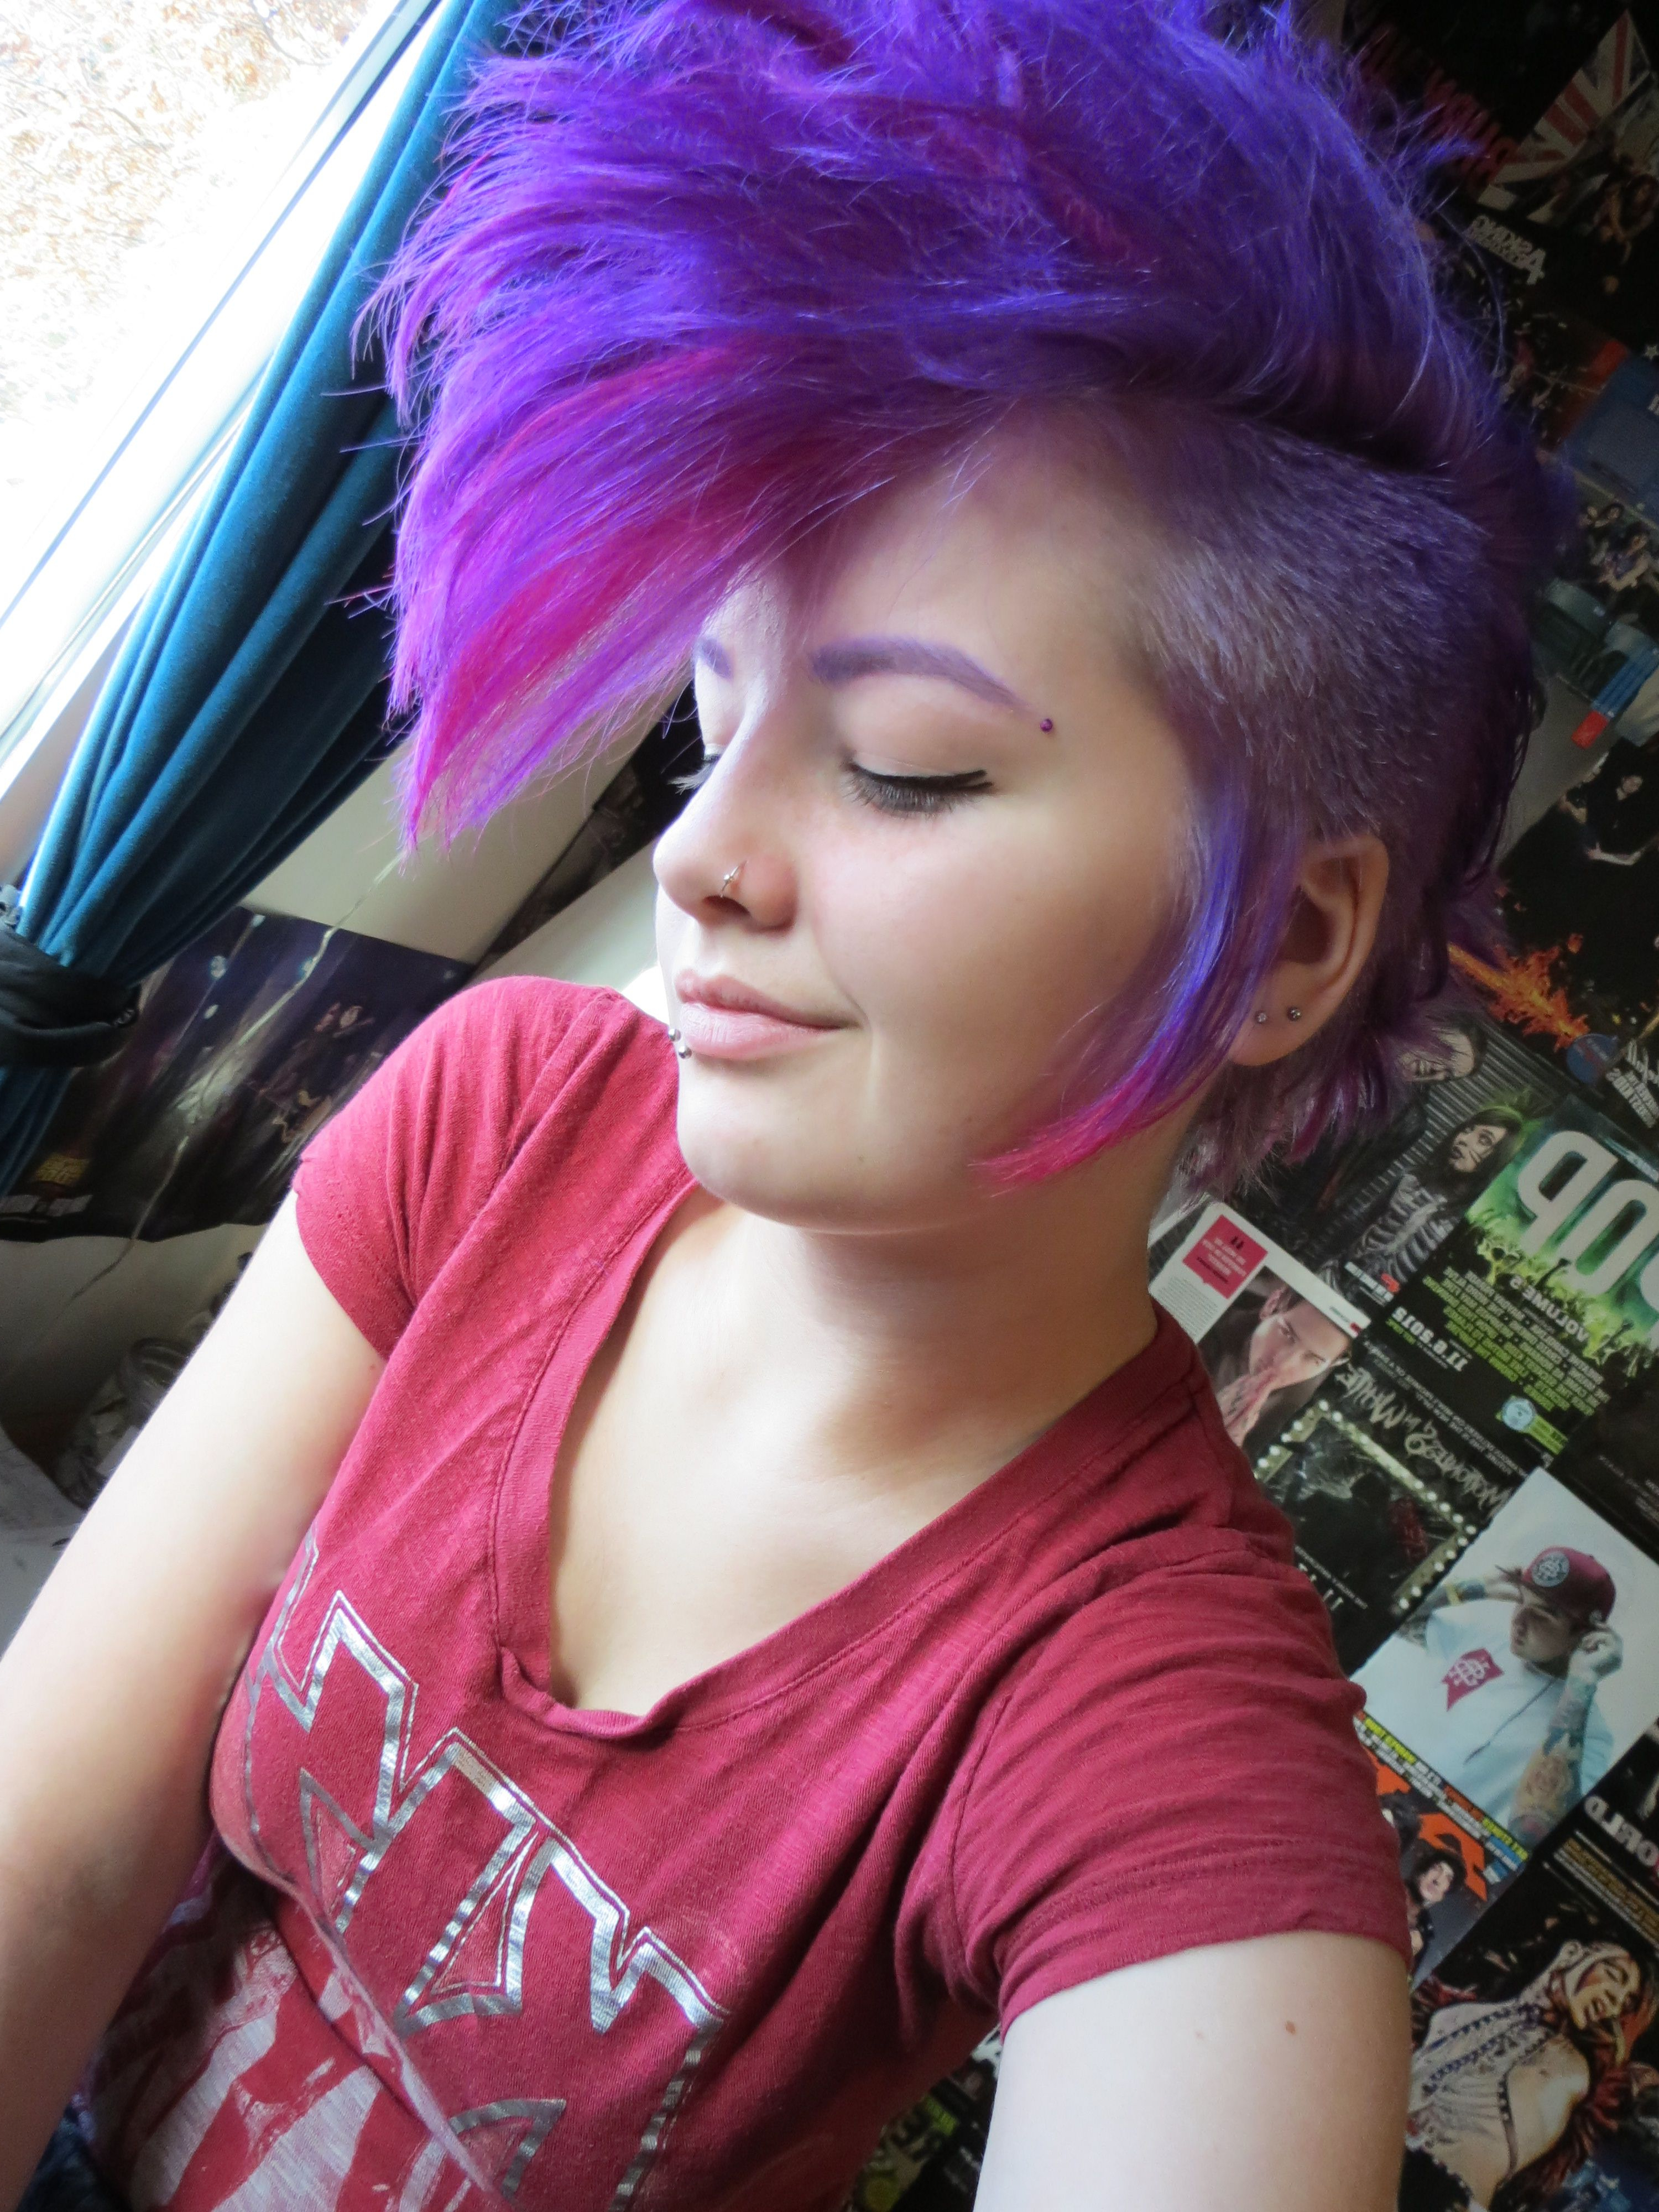 Most Current Hot Red Mohawk Hairstyles Intended For Purple And Red Mohawk/deathhawk Beautiful Girl (View 16 of 20)